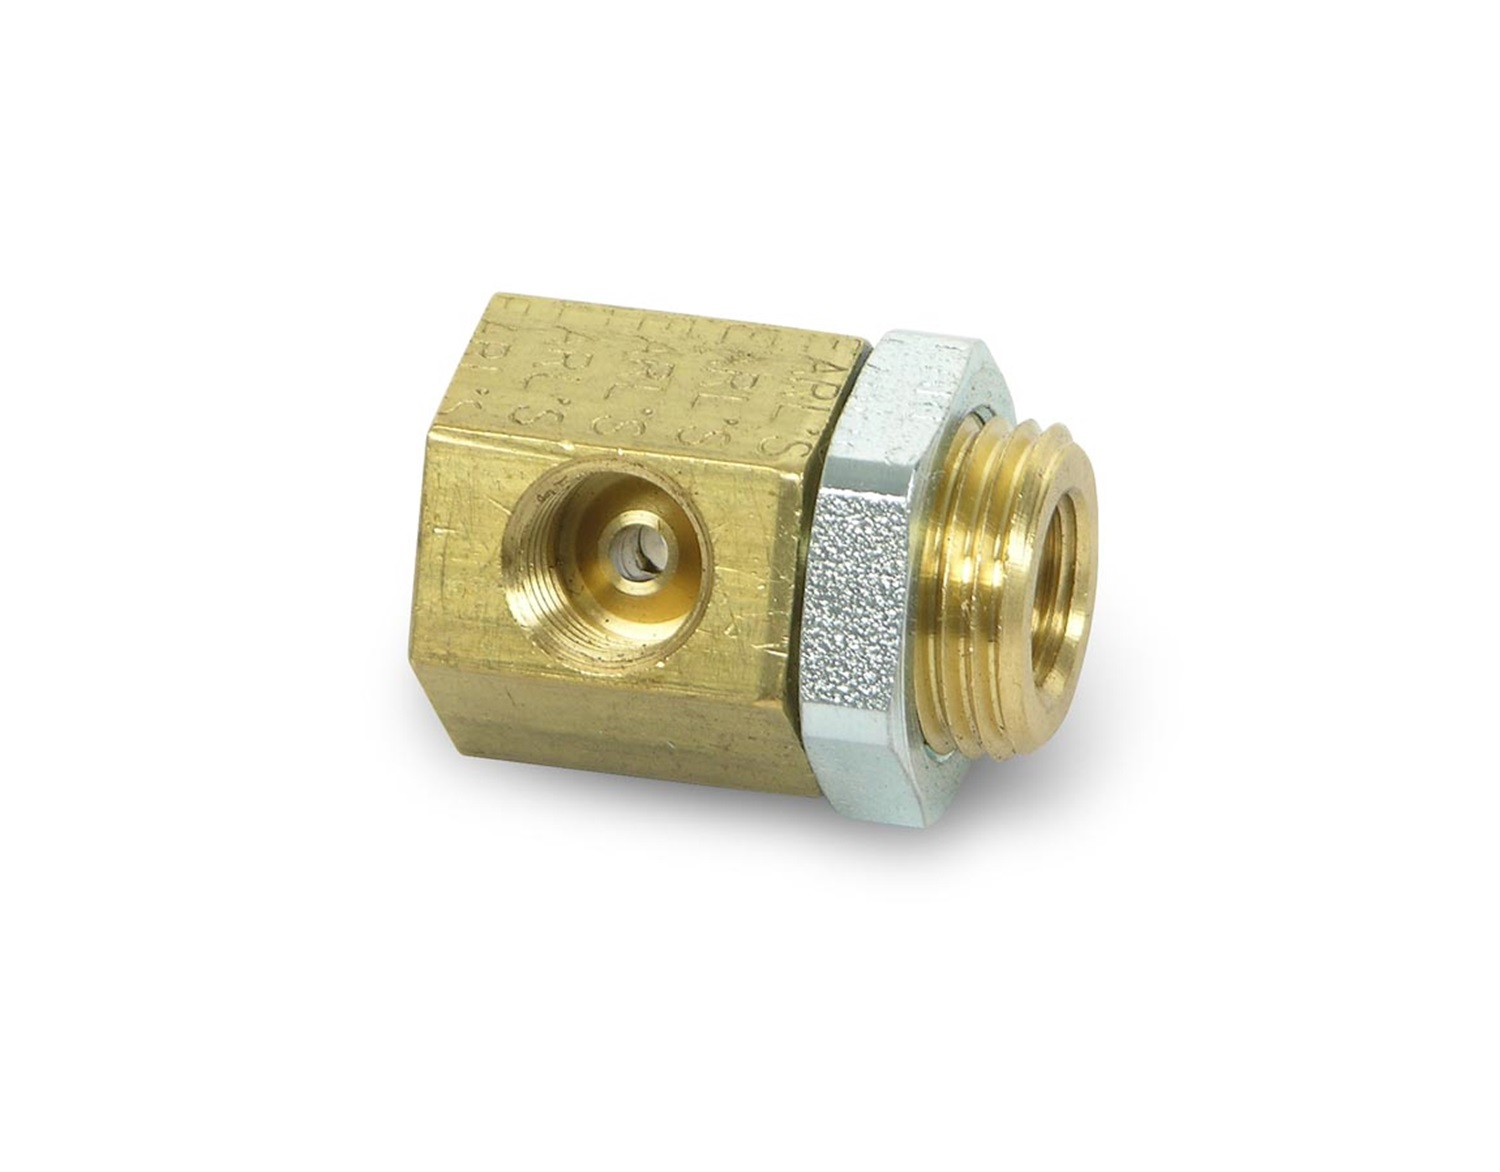 Earls Plumbing 972058ERLP Brass Inverted Flare Brake Adapter Tee